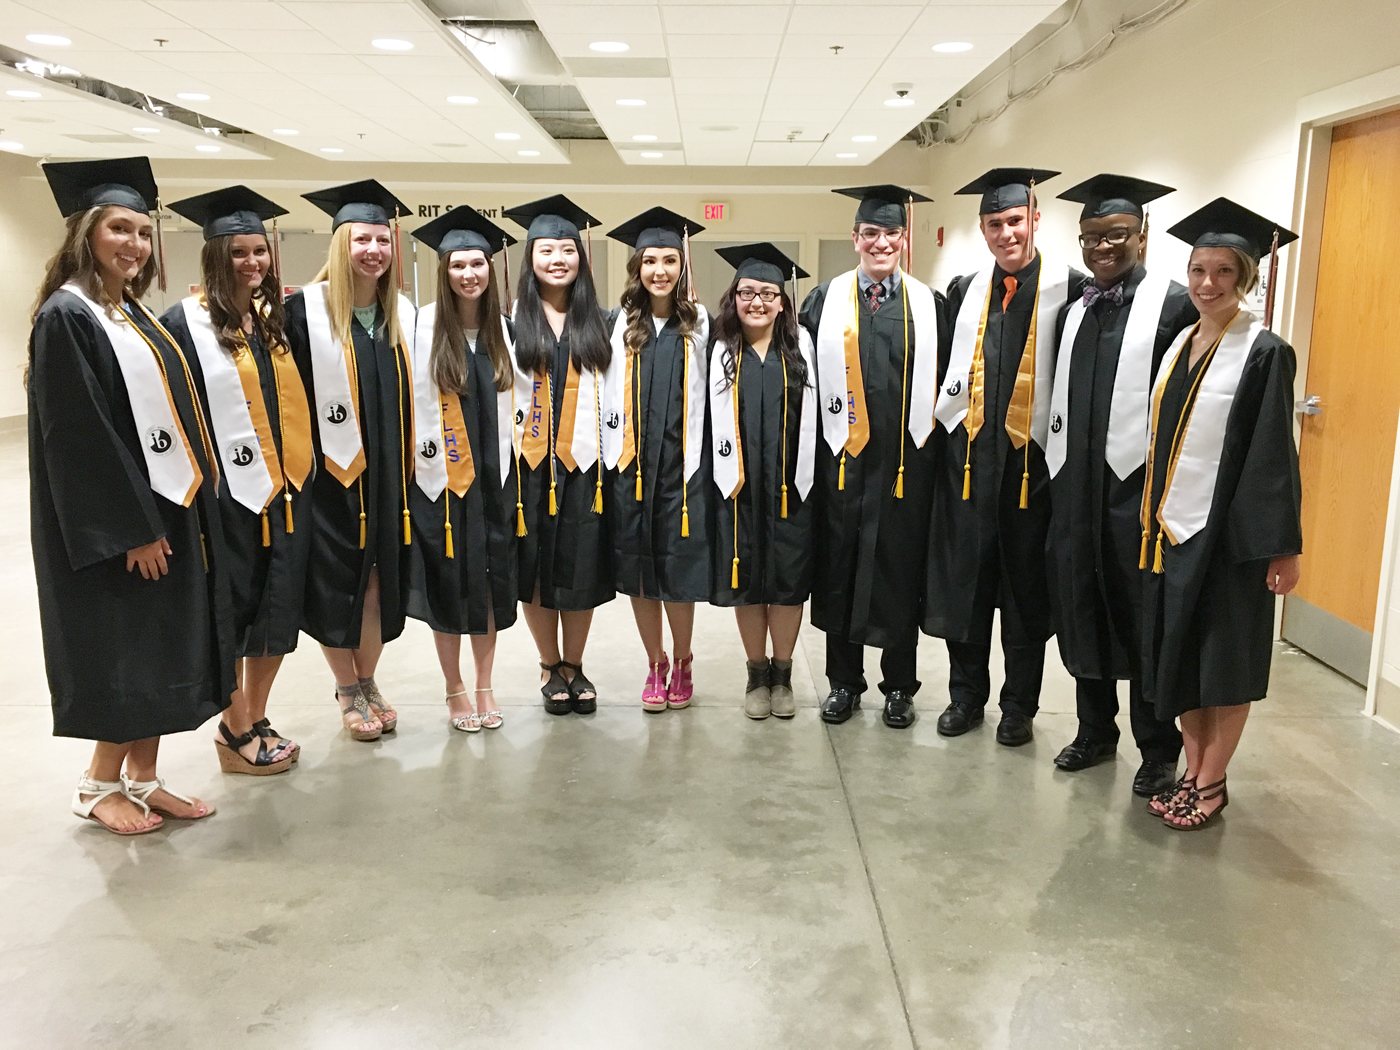 2016 Churchville-Chili IB graduates (l-r): Gabrielle Kolmer, Melissa Prewasnicak, Emily Sabo, Leanne Walker, Nicole Cammilleri, Quyen Nguyen, Andrew Nicchitta, Nicholas DiFlorio, Zachary Vaughn and Kathleen Ohman. Provided photo